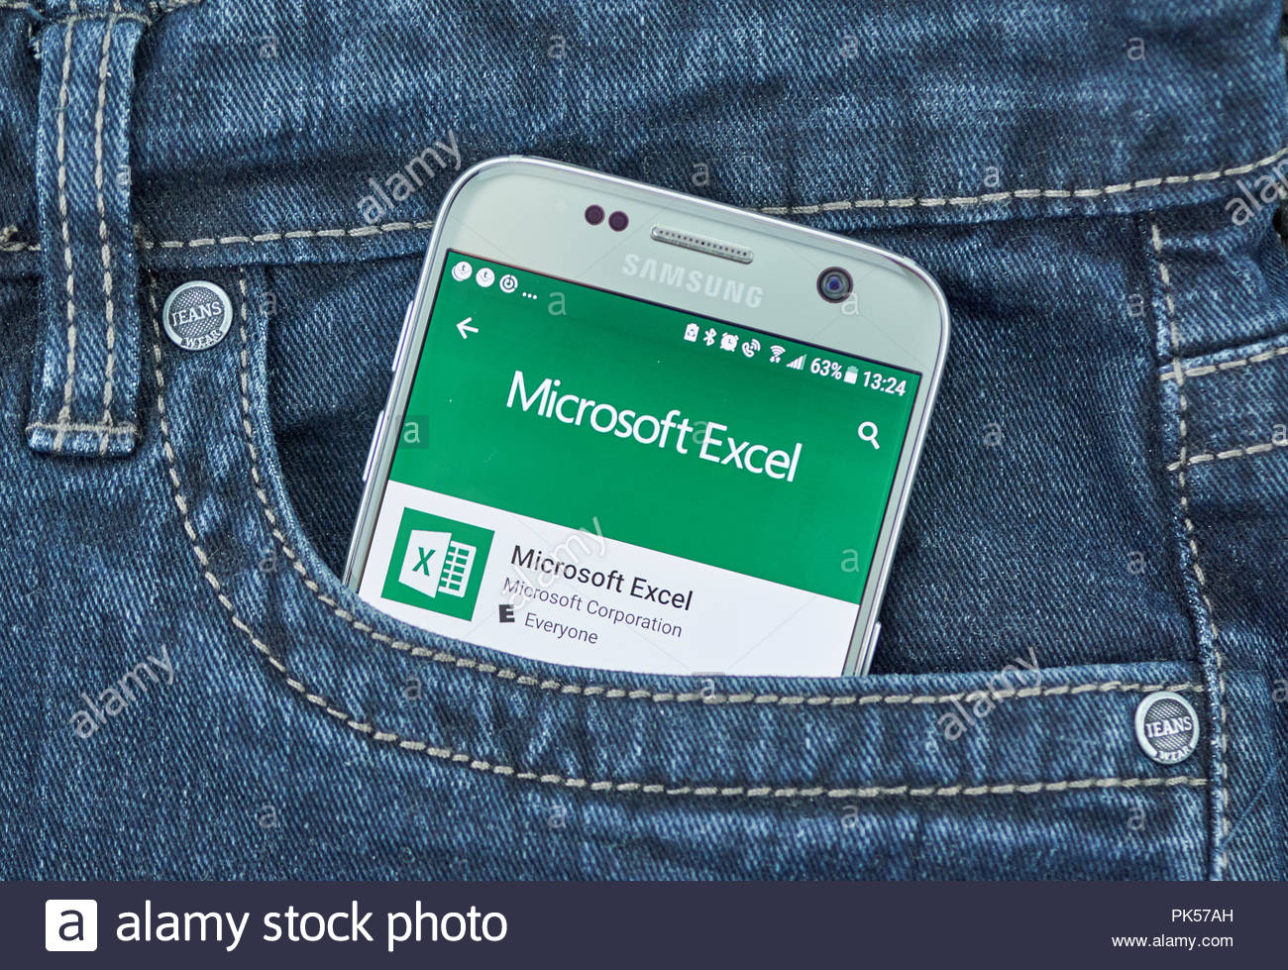 Windows Spreadsheet App Within Montreal, Canada  September 8, 2018: Microsoft Excel Mobile App